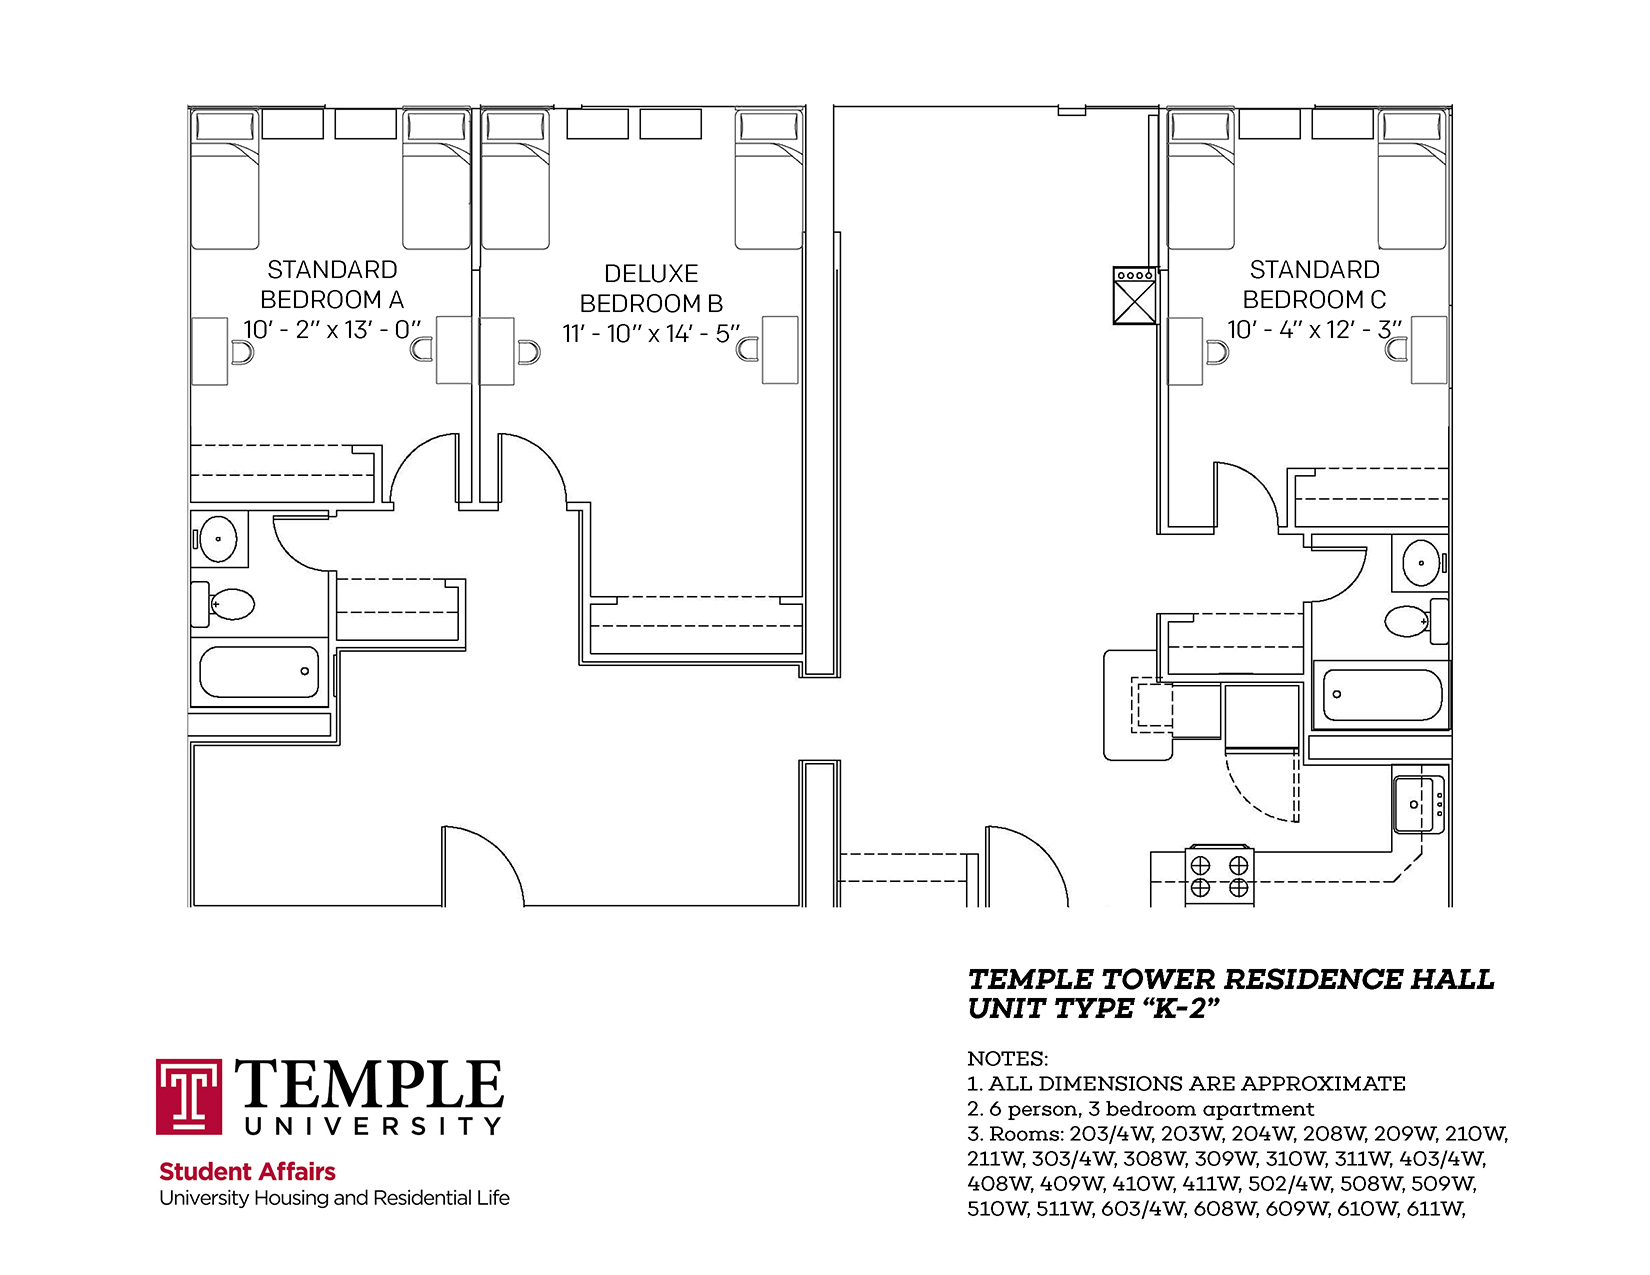 3 Bedroom Apartment Floorplan Temple Towers University Housing And Residential Life